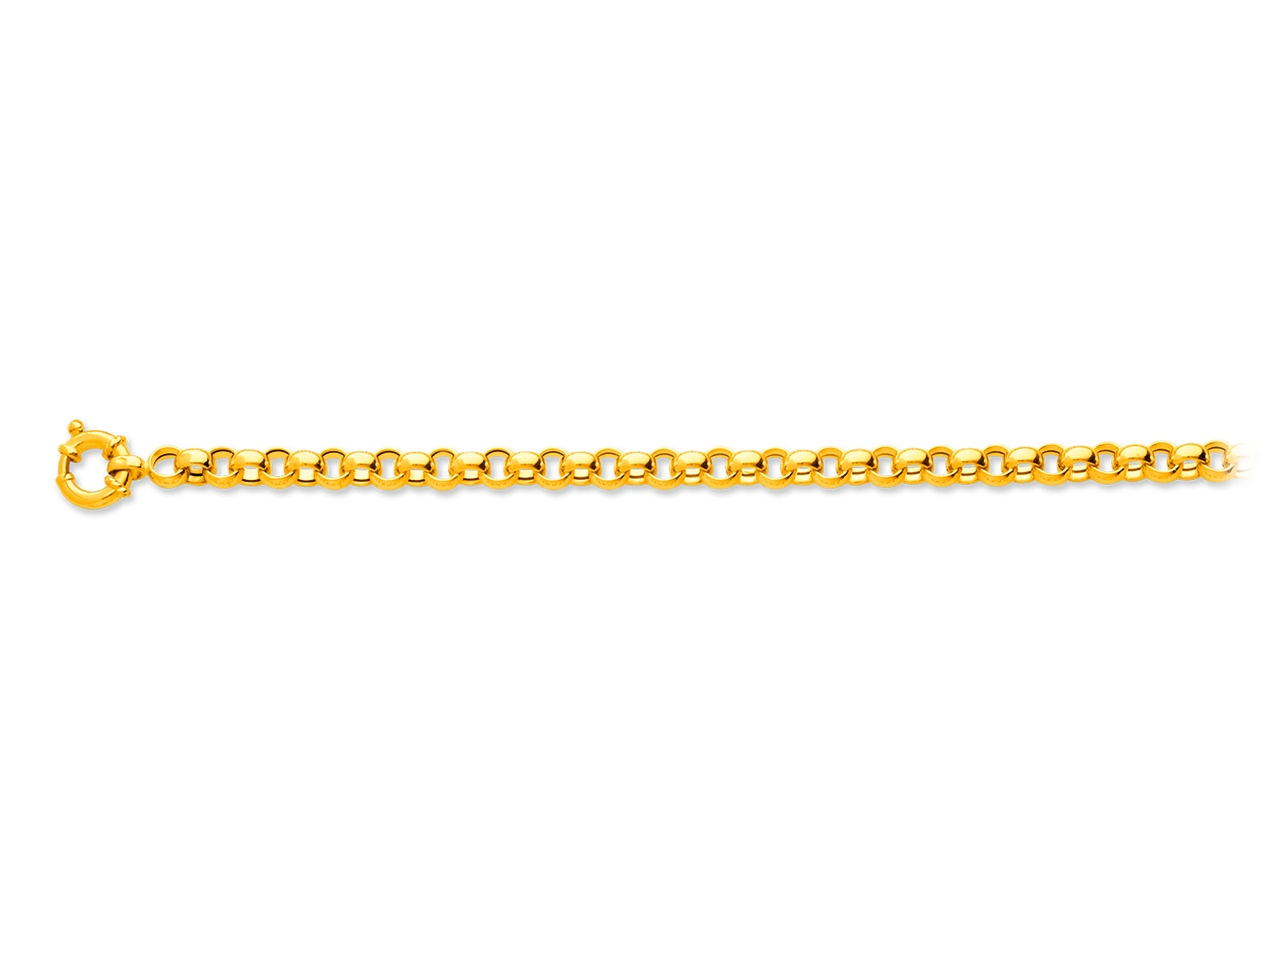 Collier maille jaseron, Or jaune 18k, 6 mm, 45 cm